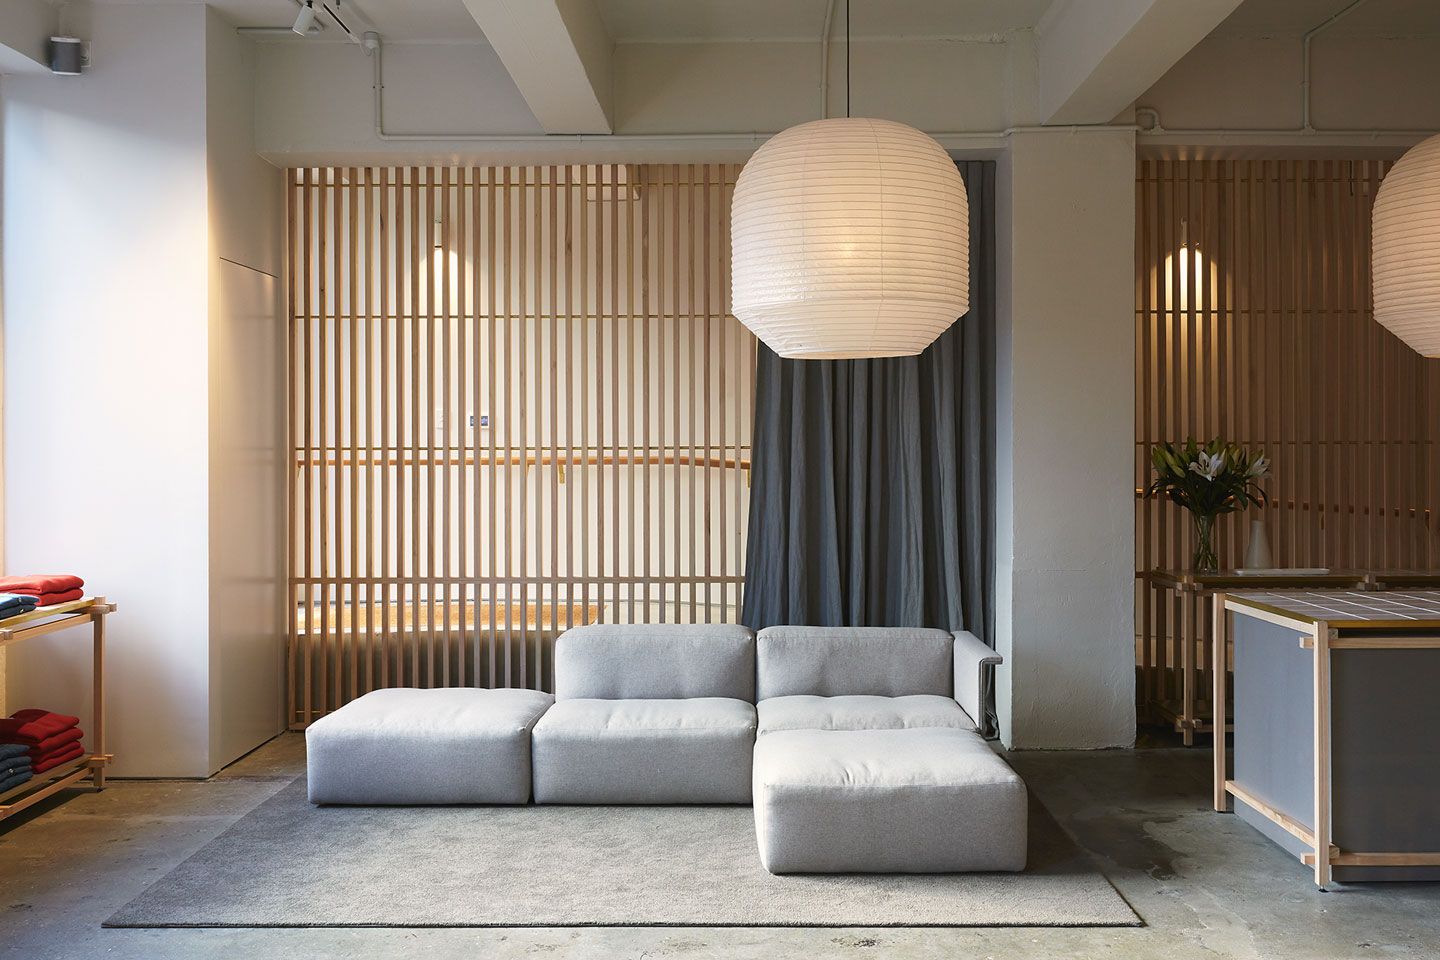 01_Kowtow_Flagship_Makers-of-Architecture